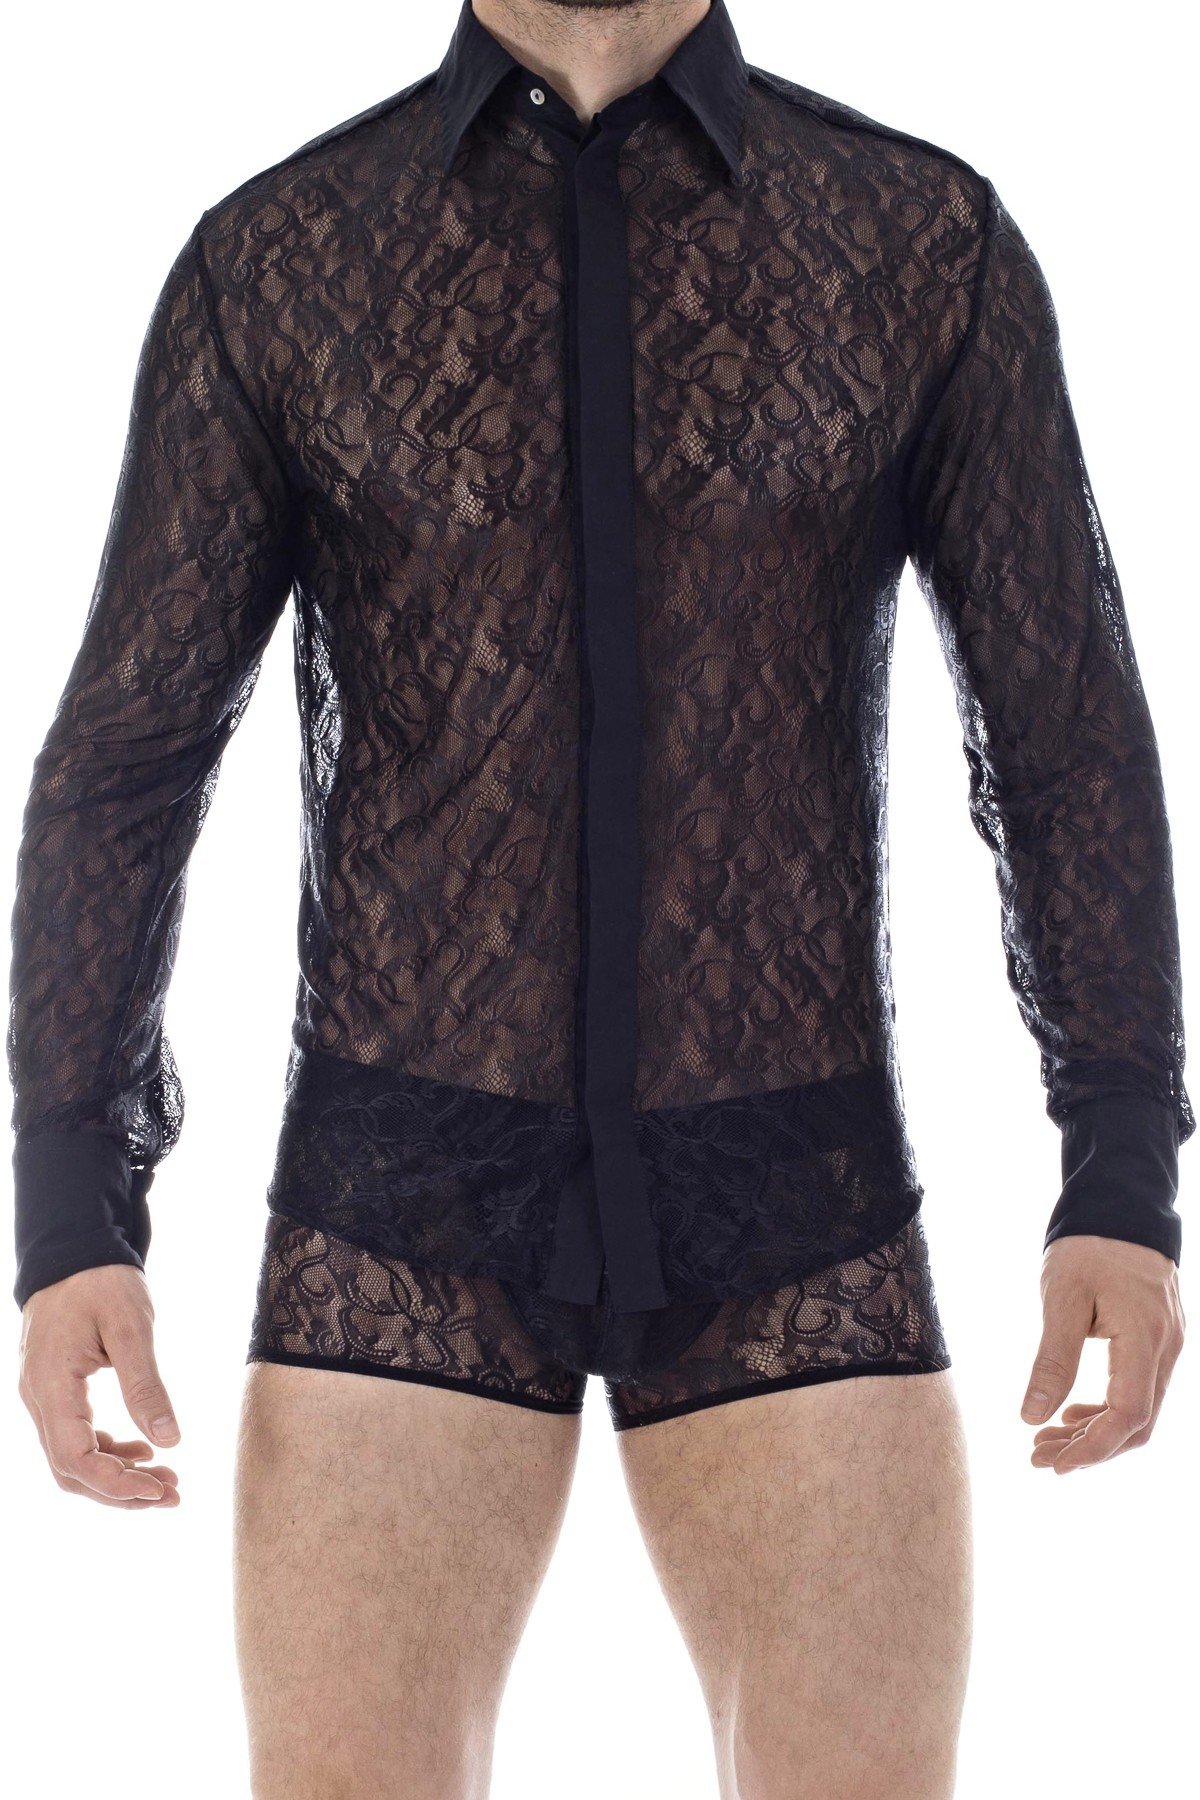 361dae94b75b Mystique Mens shirt in Lace | Mens luxury shirt in black lace